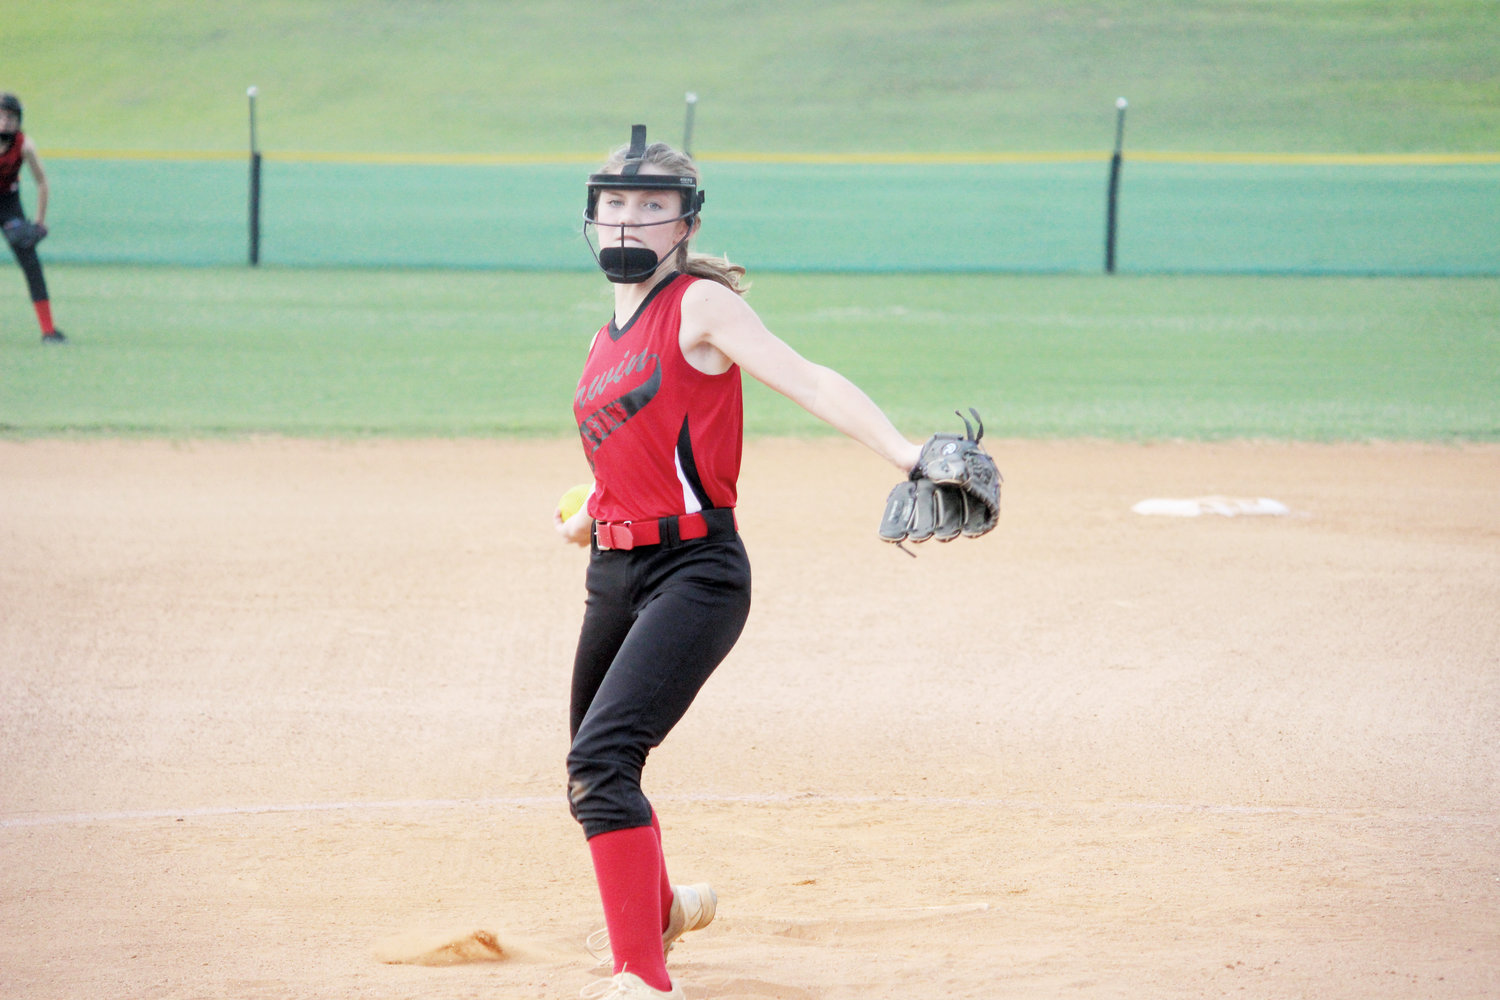 Sydney Bradham fires a pitch on Thursday. Bradham pitched the entire tournament for Erwin, helping guide her team to the District IV championship.